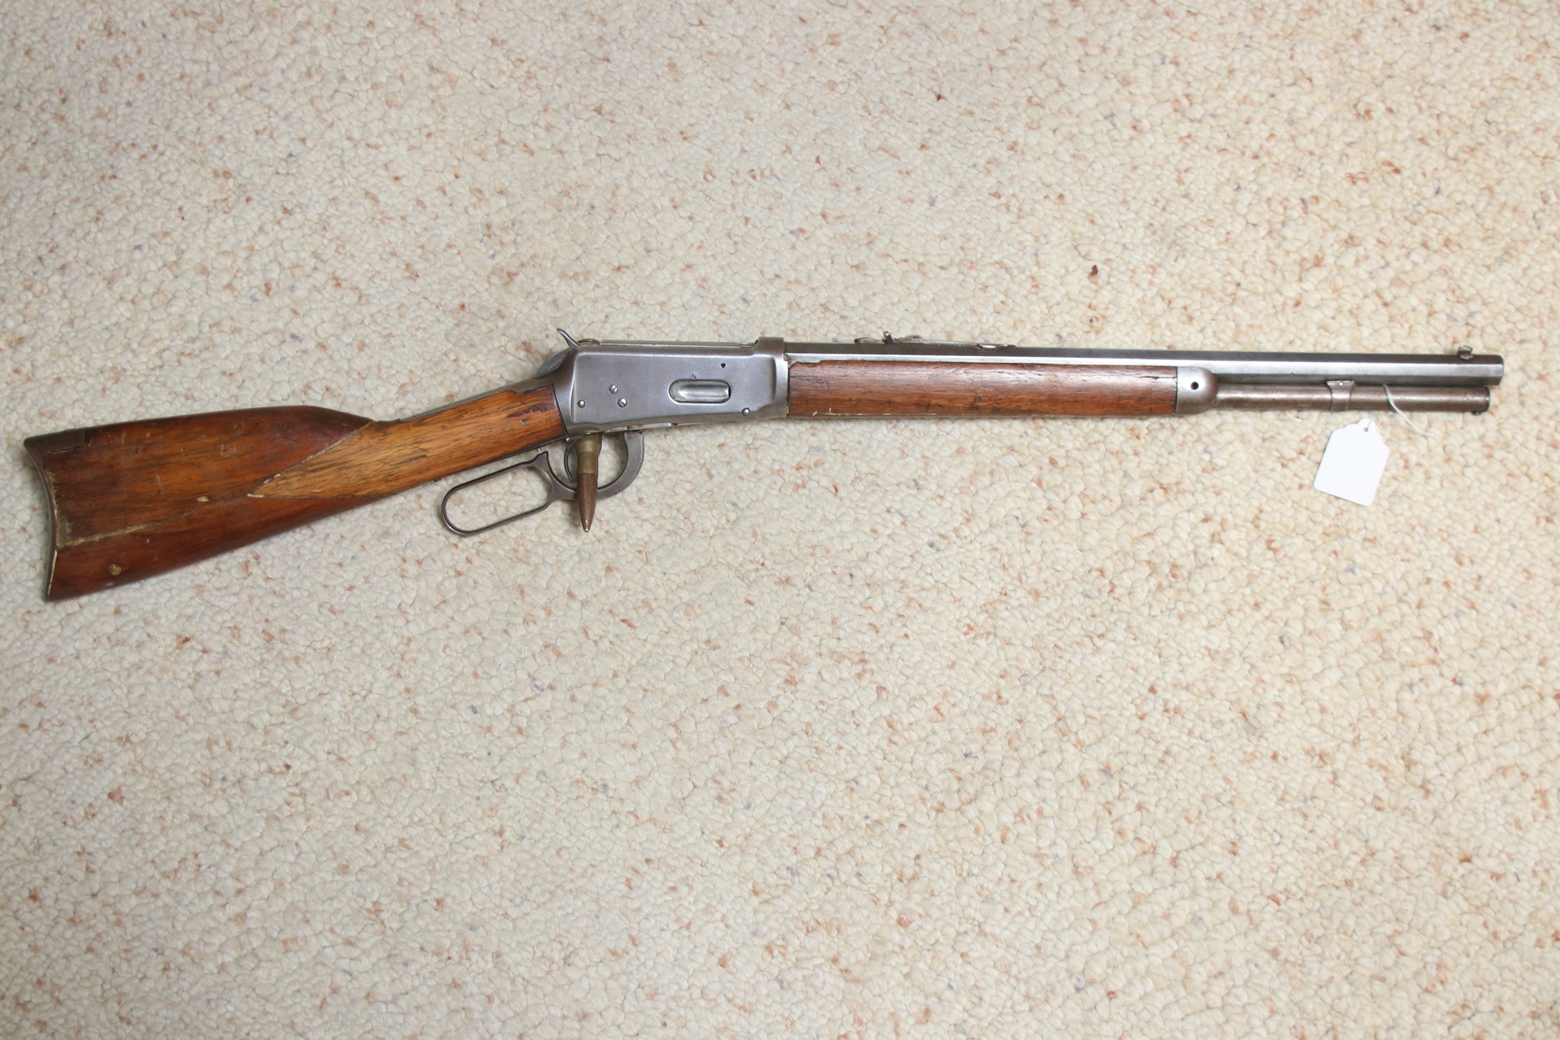 Winchester - 1894, 30-30 rifle...